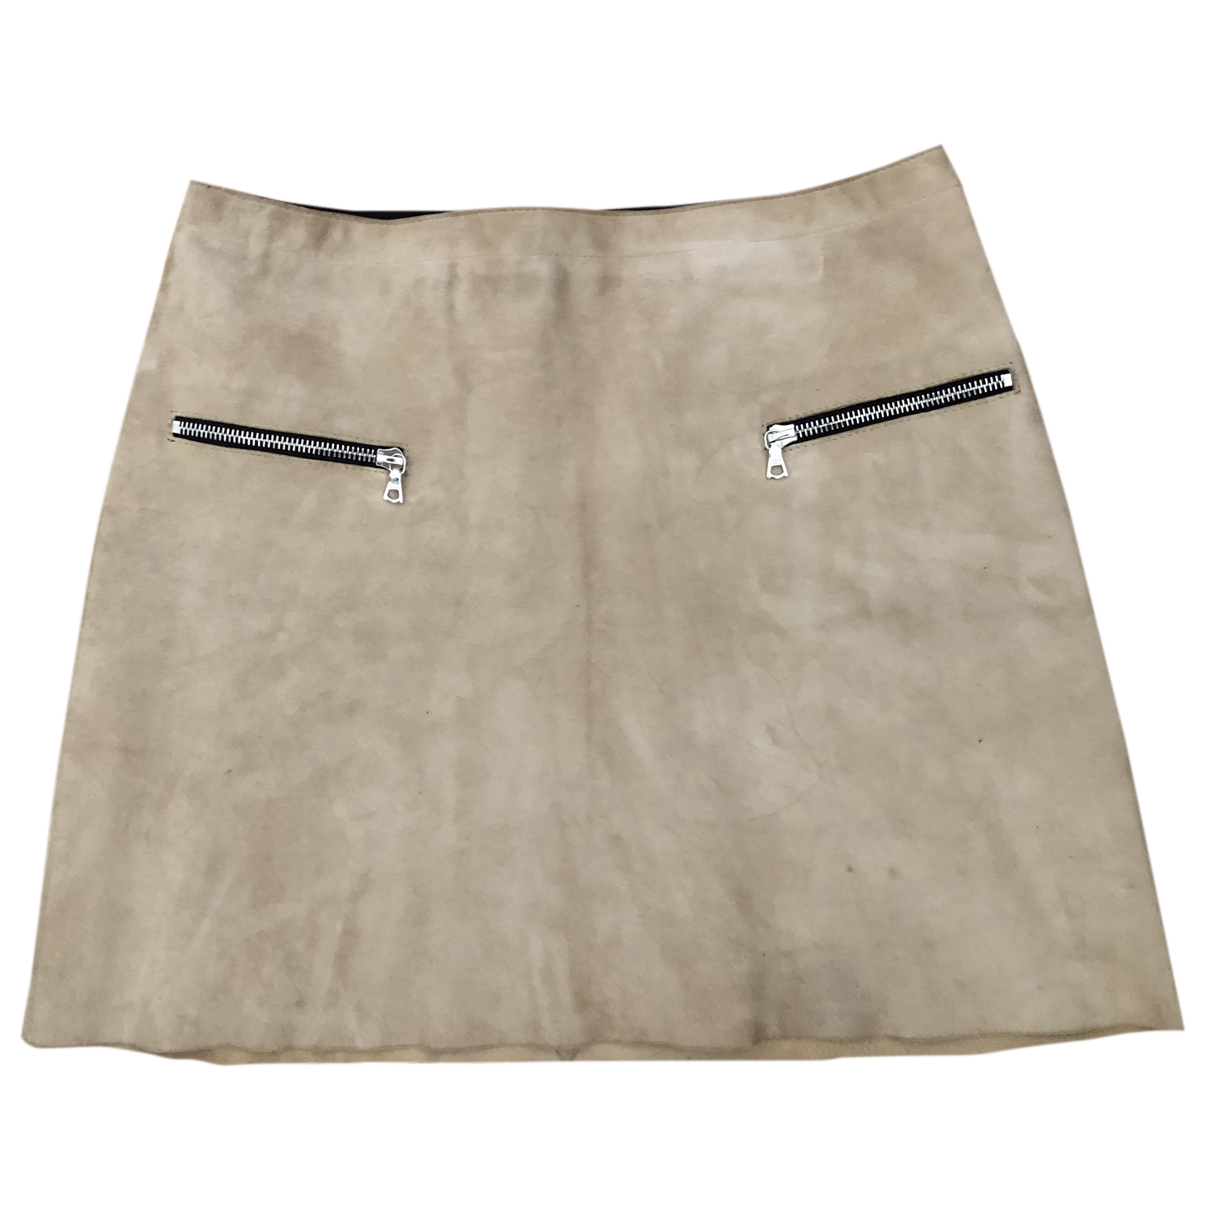 Sandro \N Beige Suede skirt for Women 36 FR